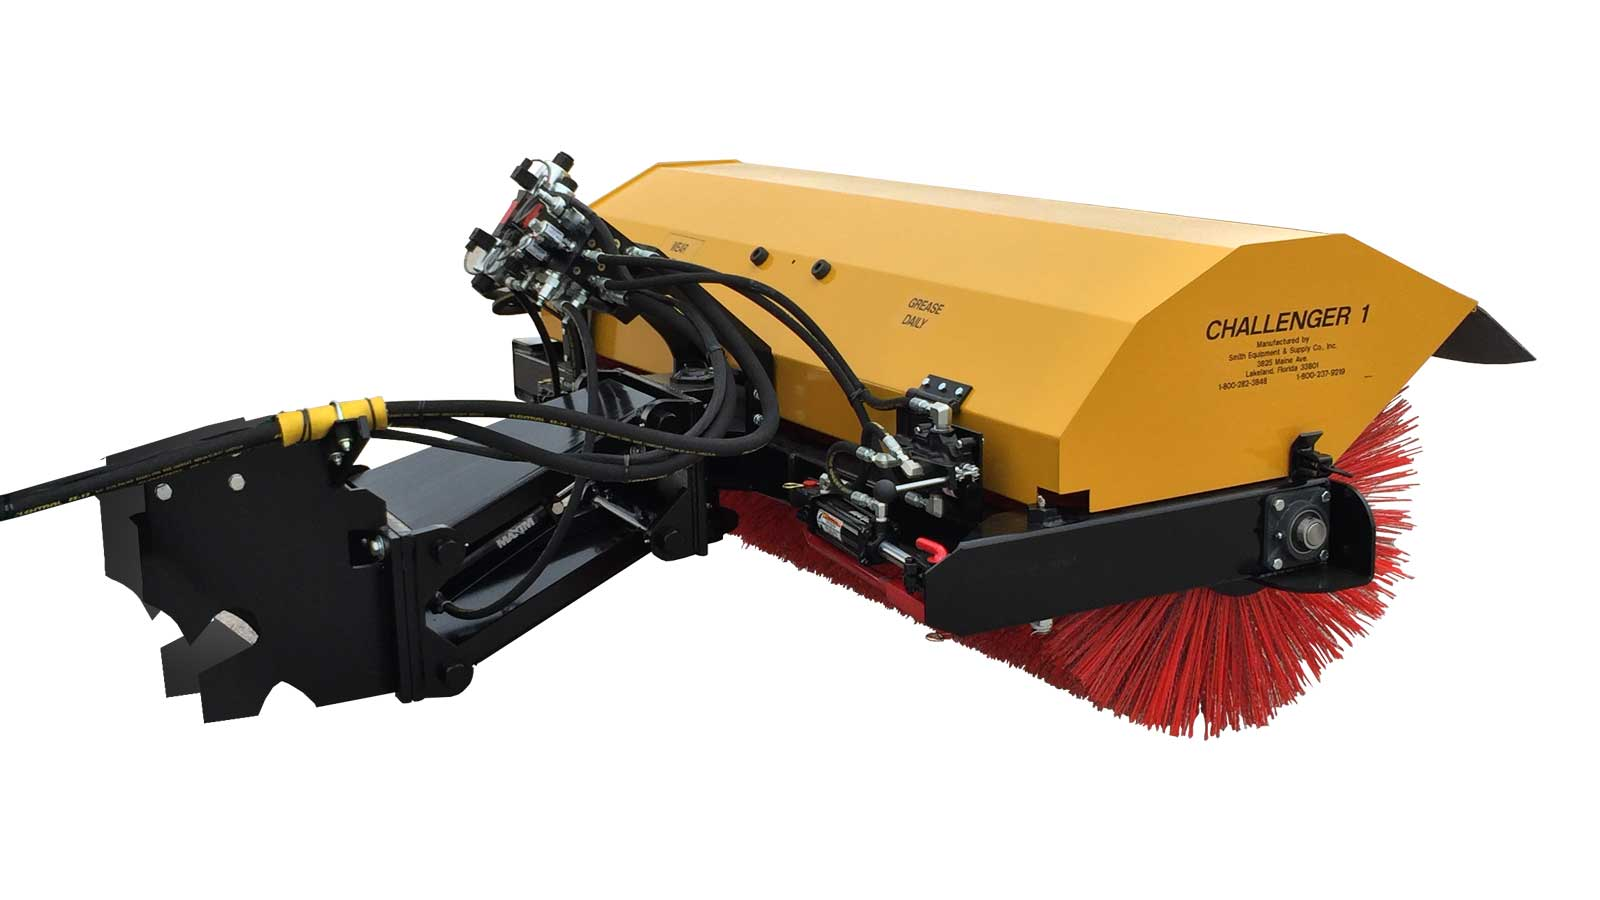 Rotary Broom Sweeper : Sweeper attachments challenger smith equipment